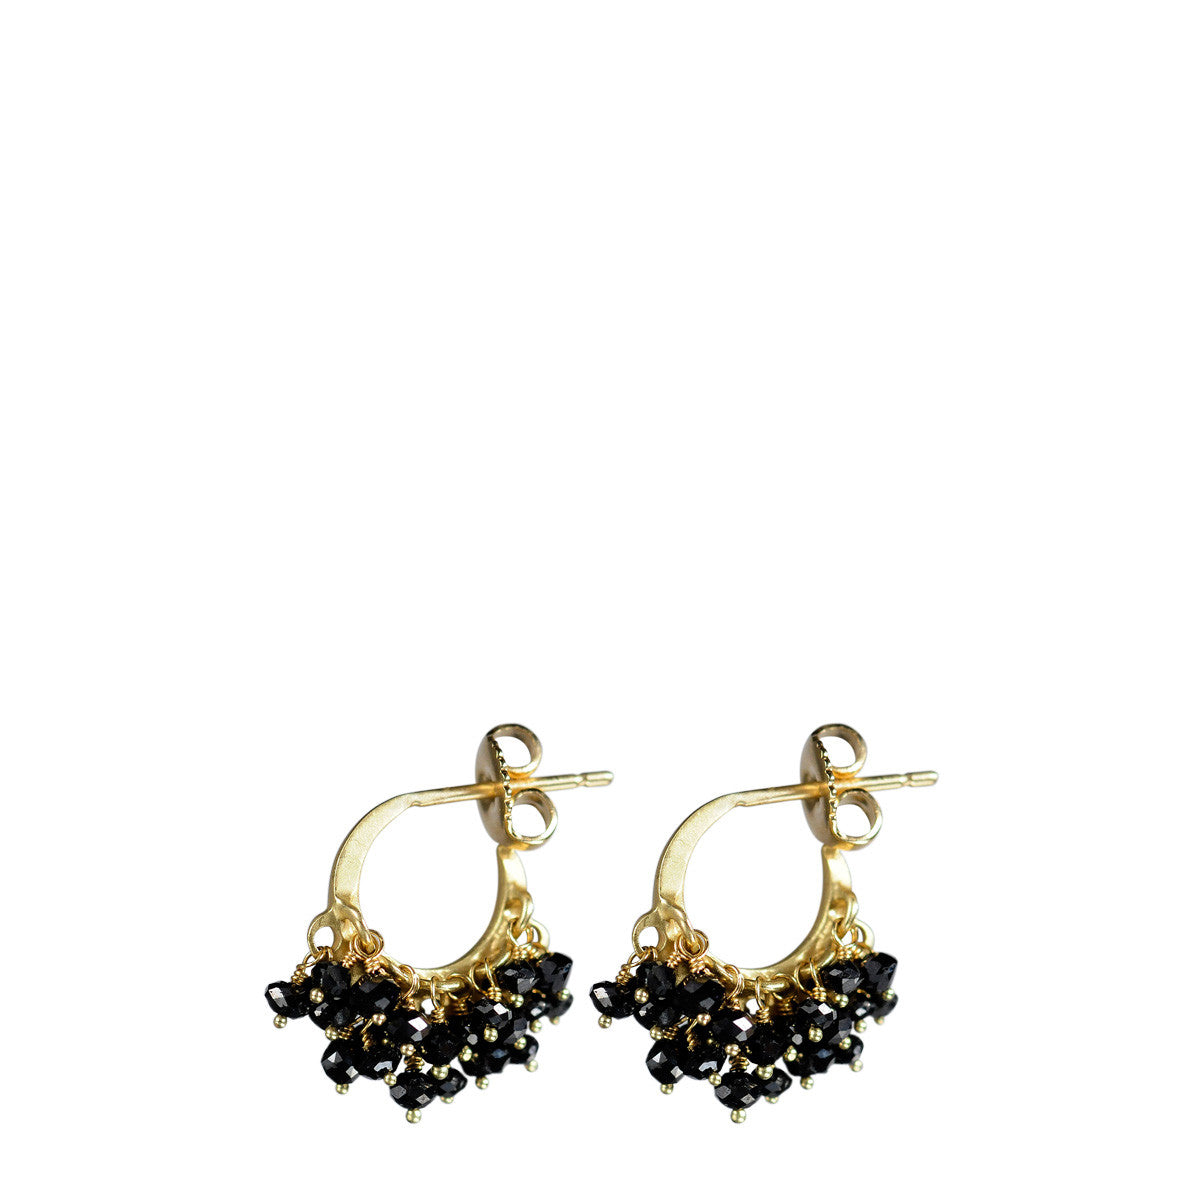 18K Gold All Black Diamond Bead Hoop Earrings